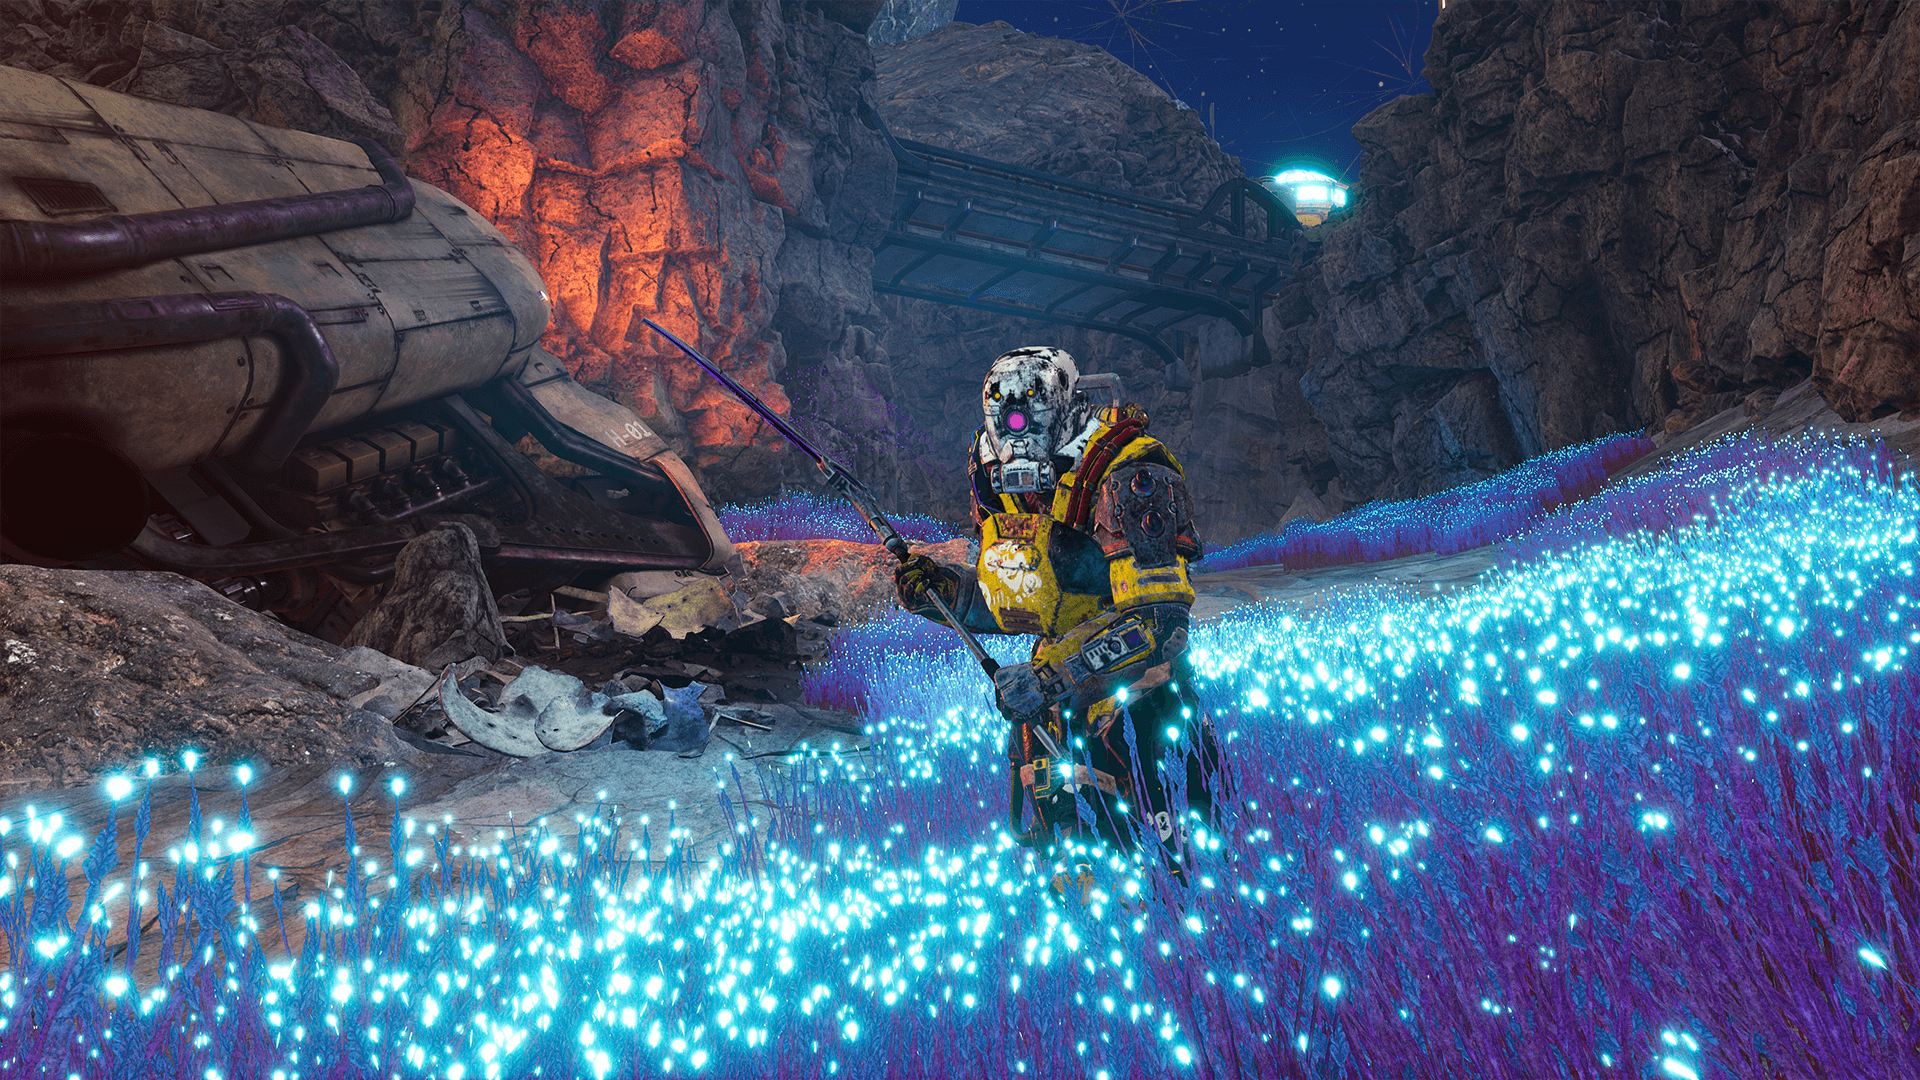 The Outer Worlds: Peril on Gorgon image 1